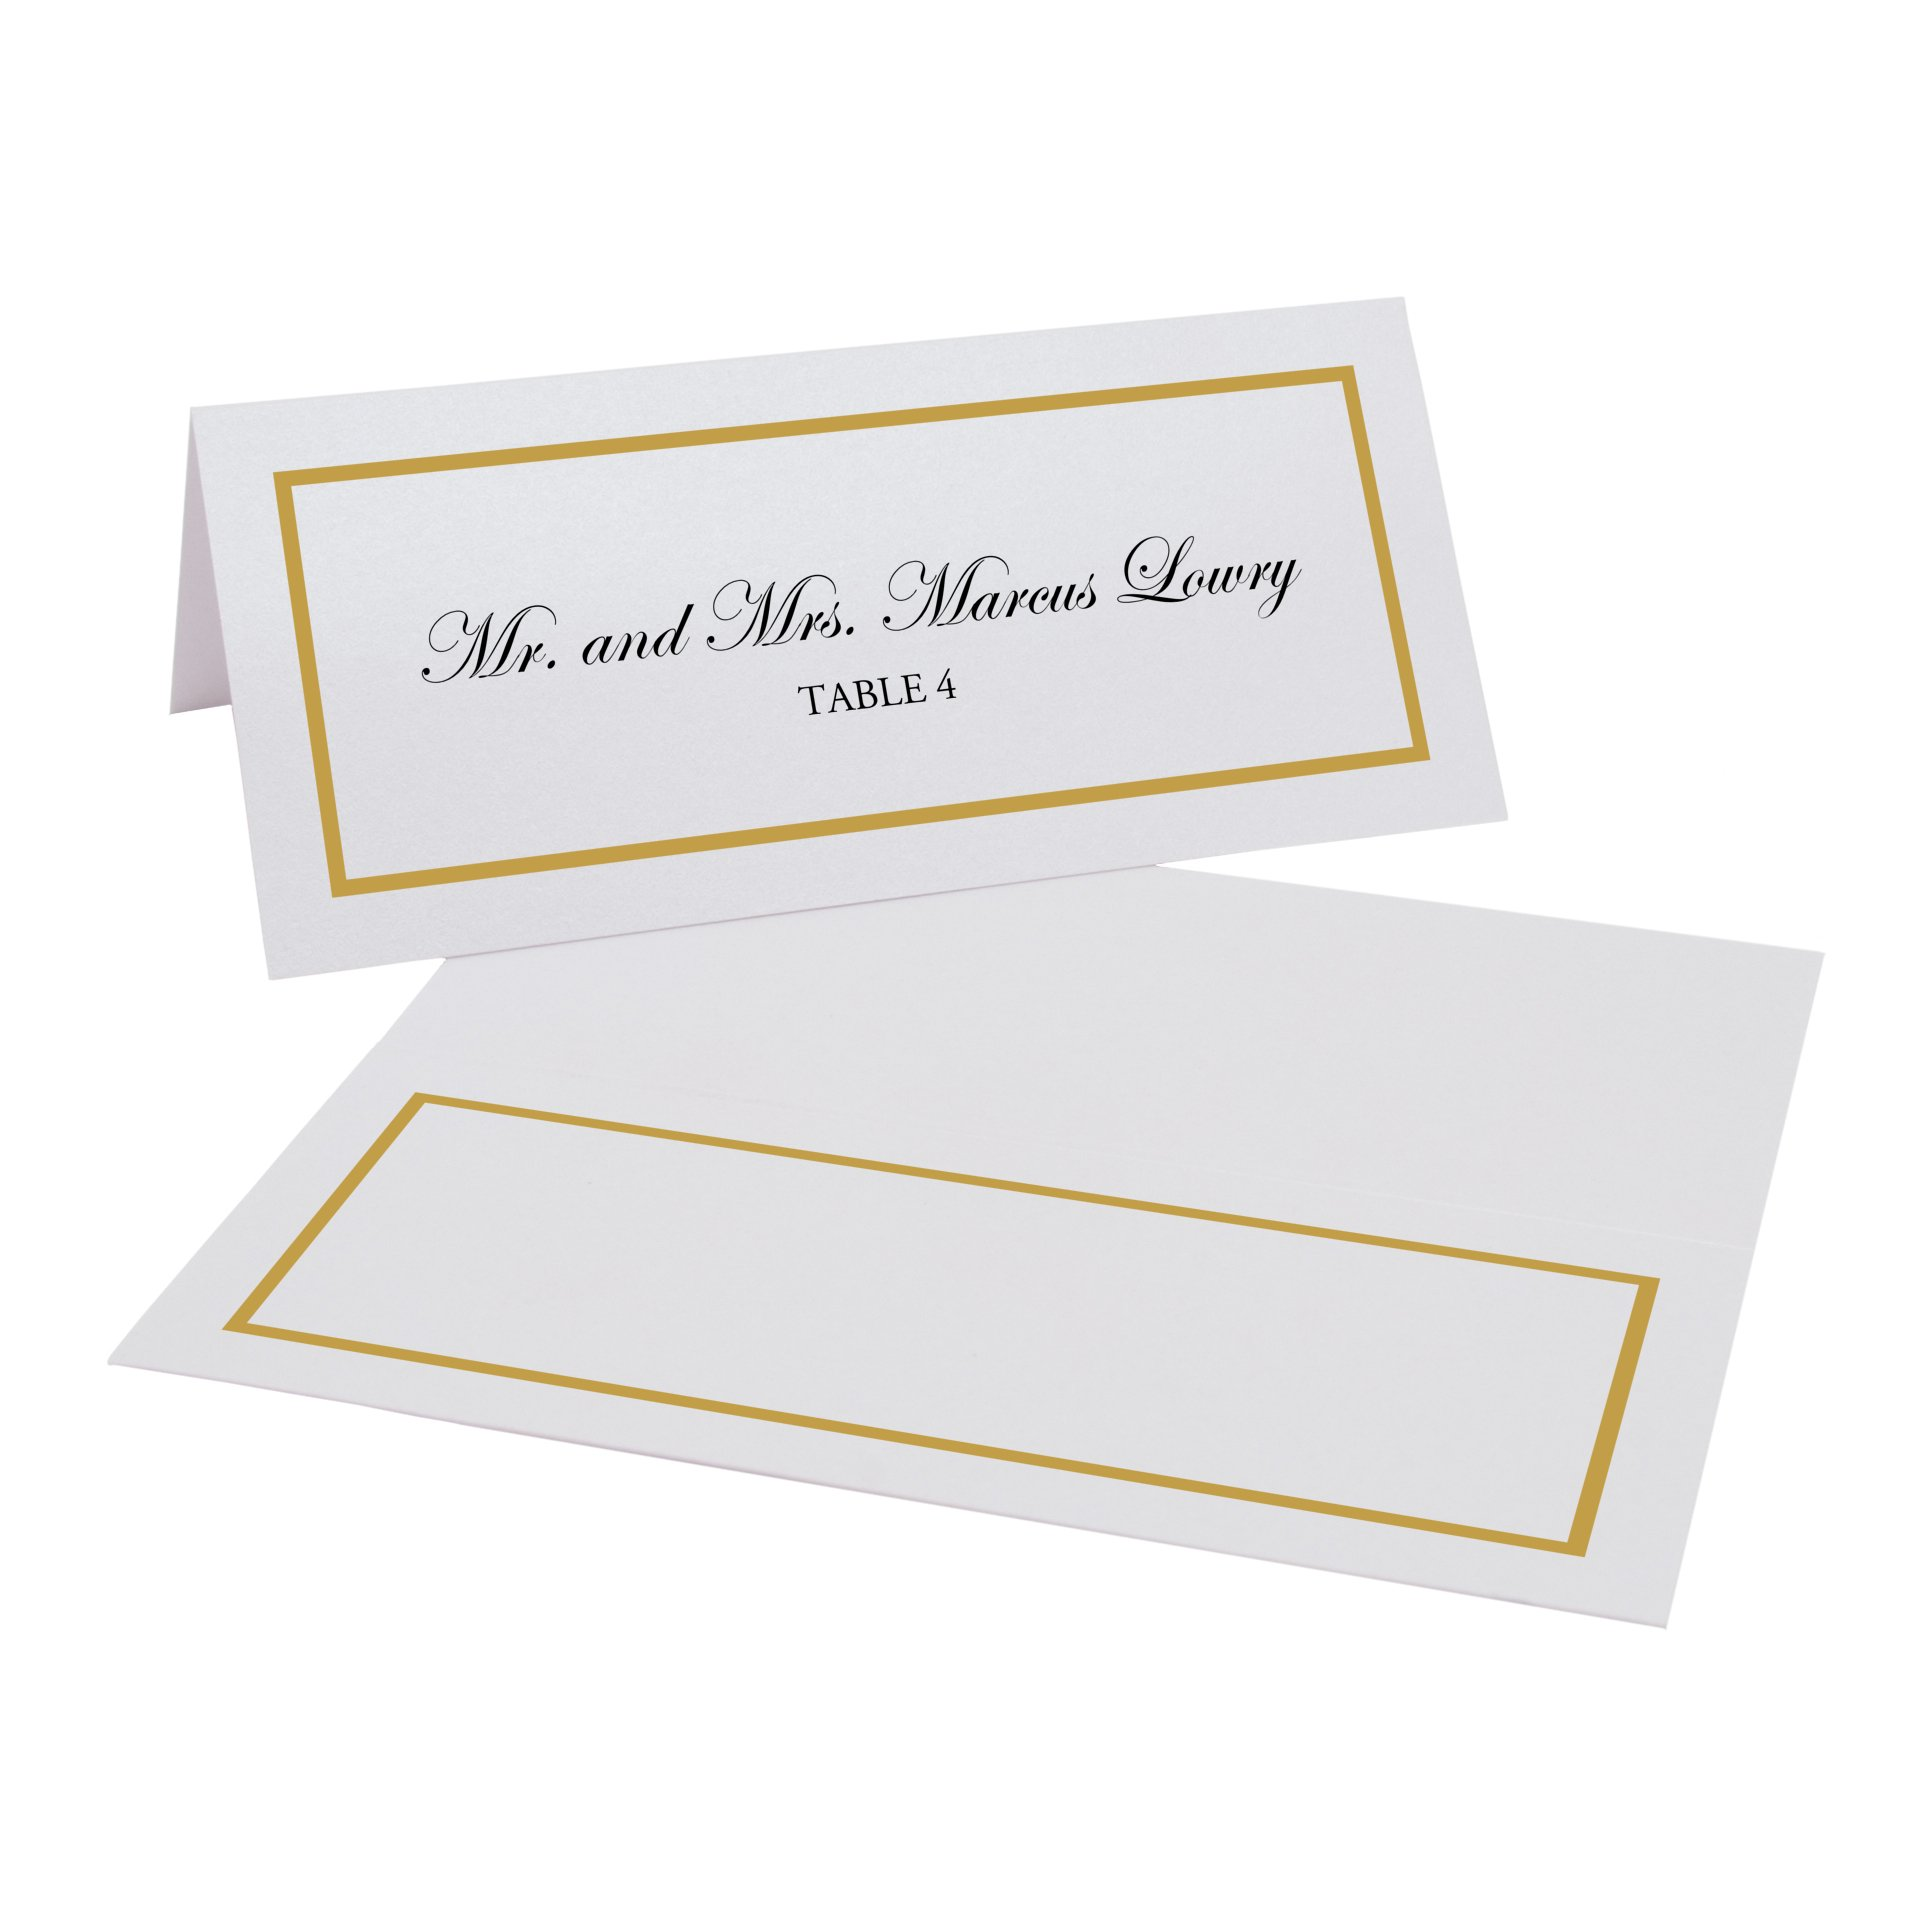 Documents and Designs Single Line Border Easy Print Place Cards, Gold, Set of 150 (25 Sheets)